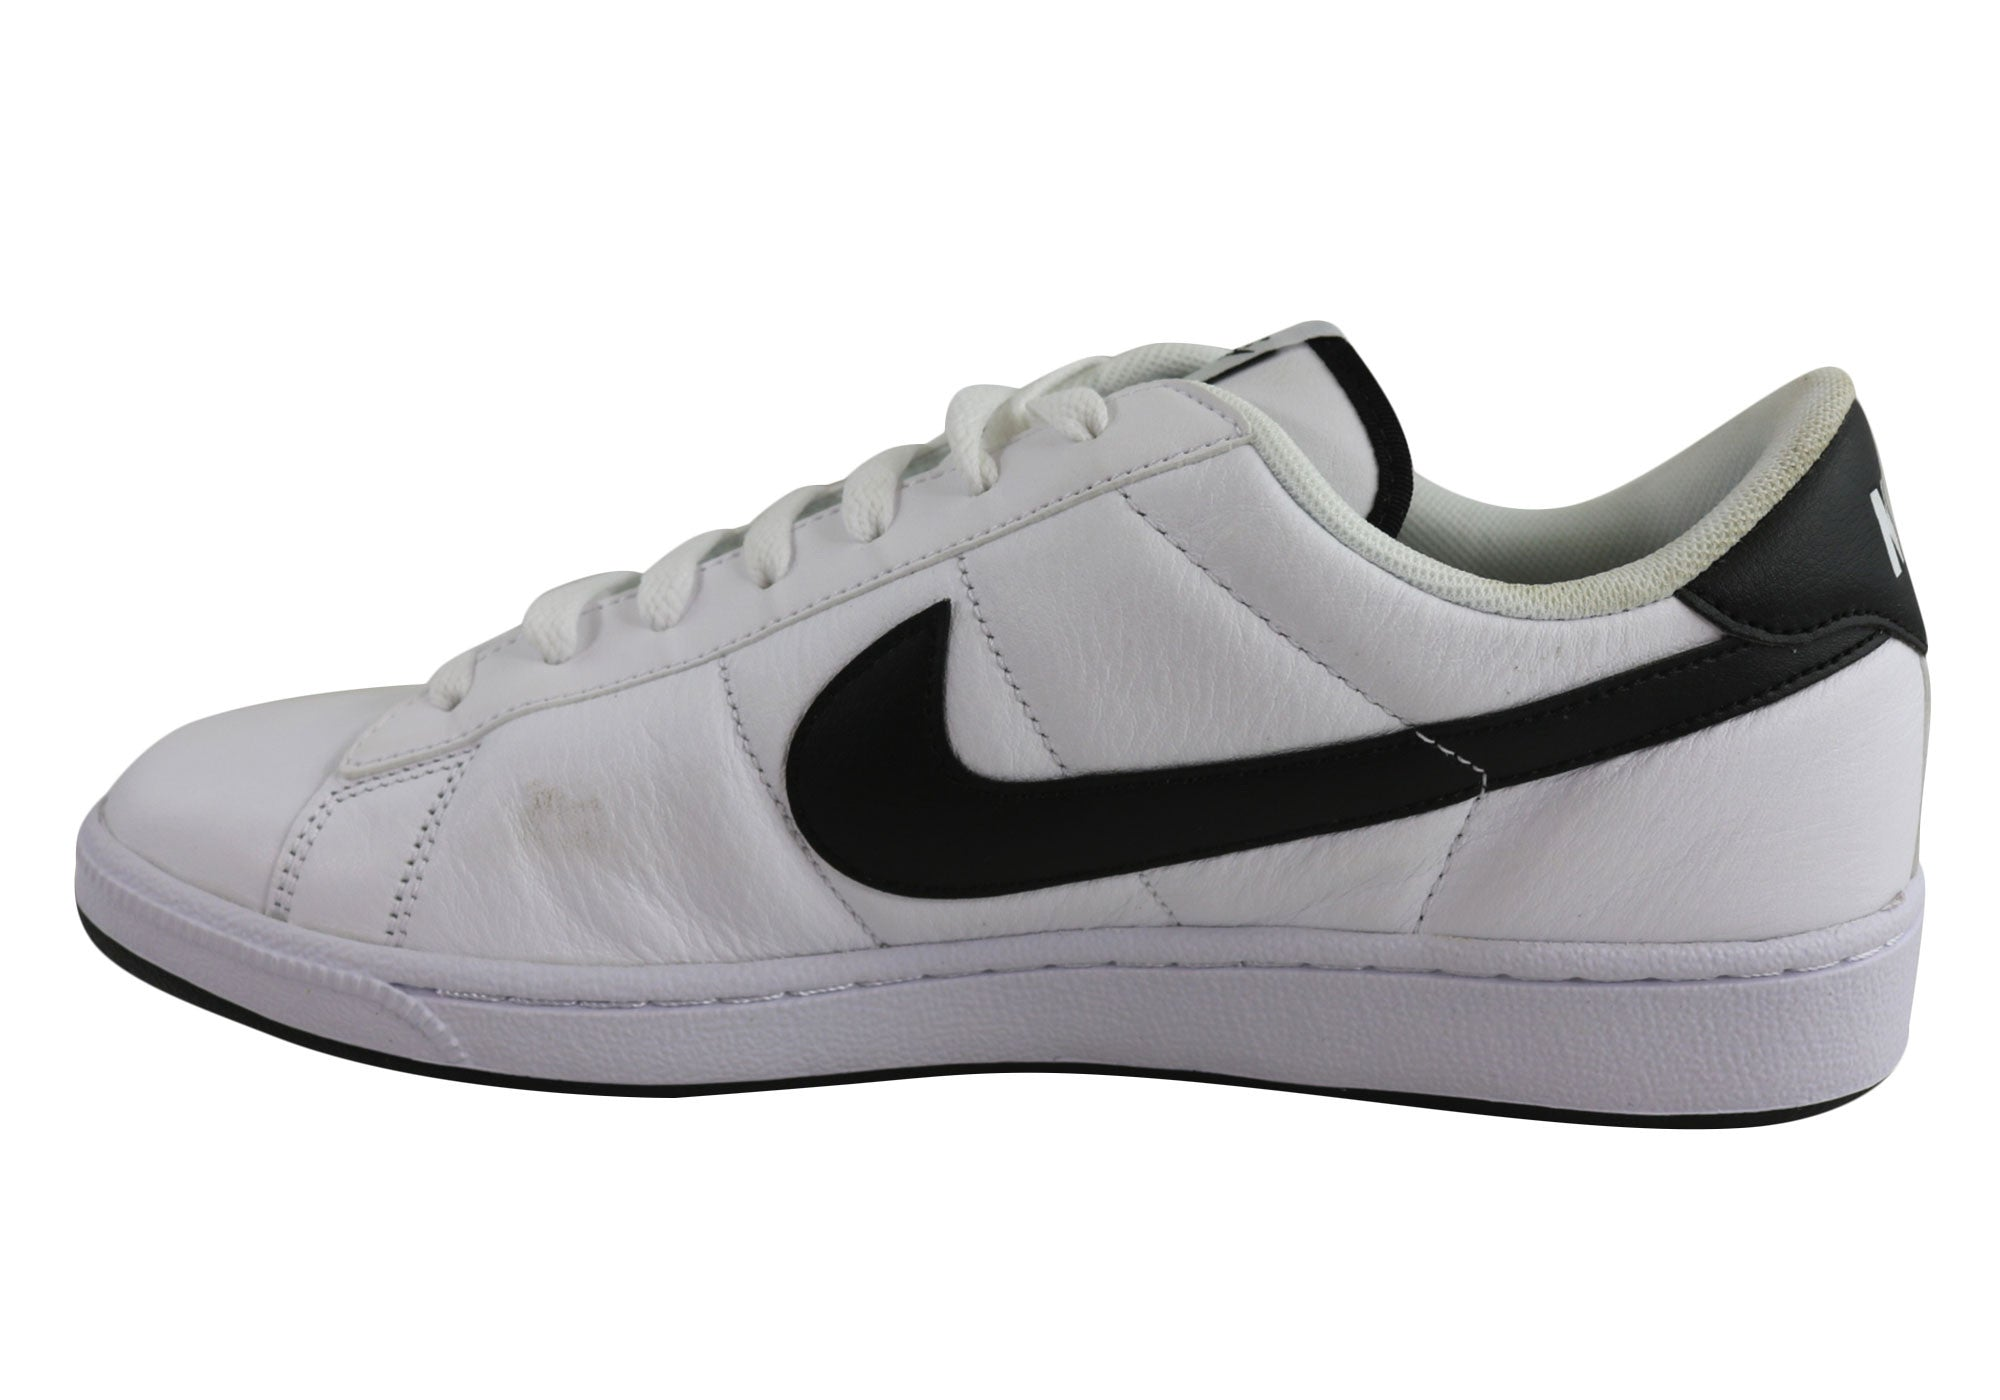 Nike Tennis Classic Mens Comfortable Lace Up Shoes